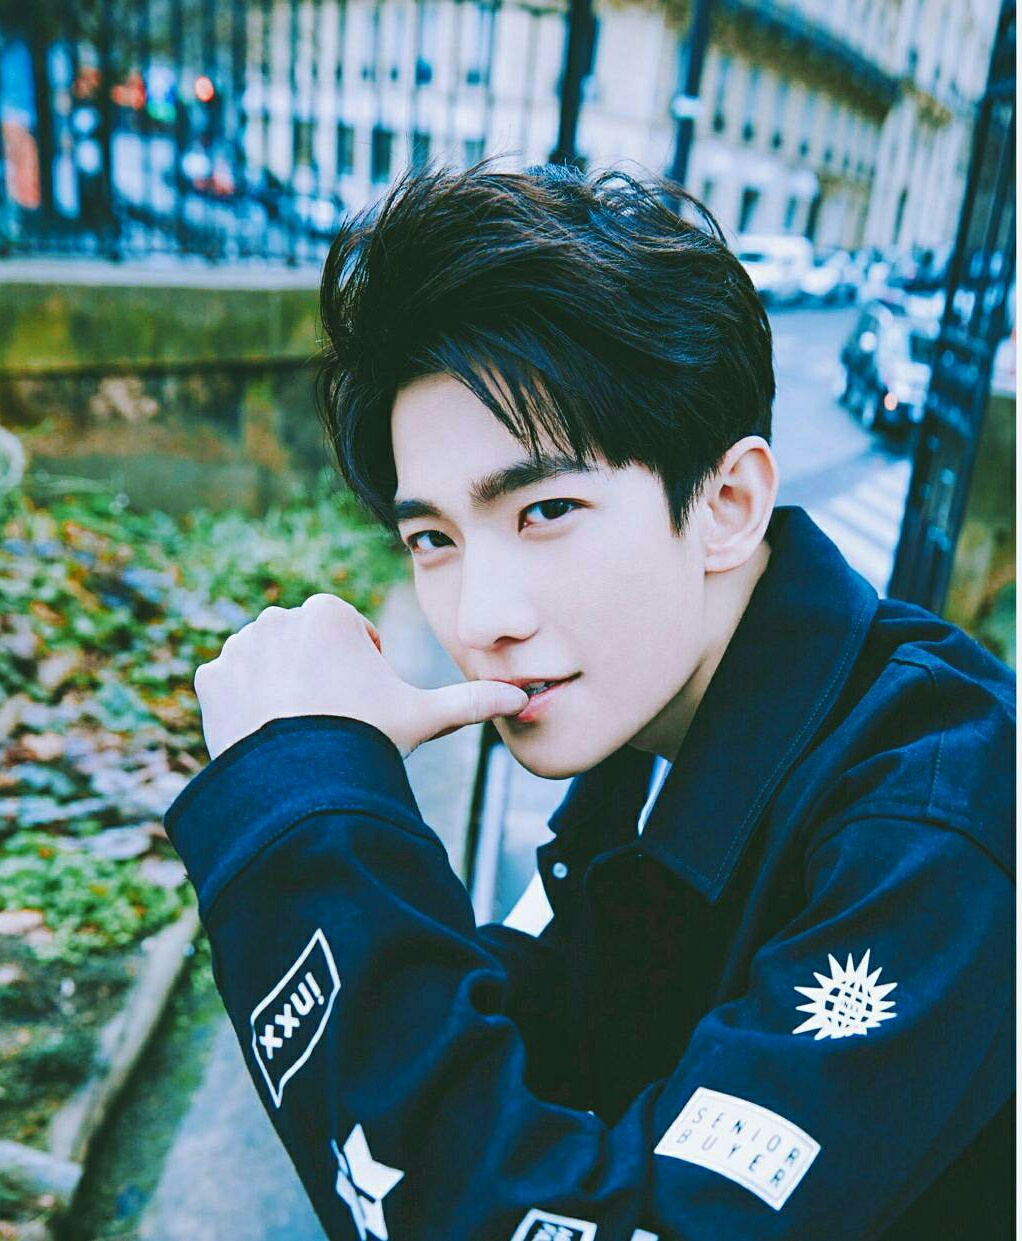 160 Images About Yangyang On We Heart It See More About Yang Yang Yangyang And Gif